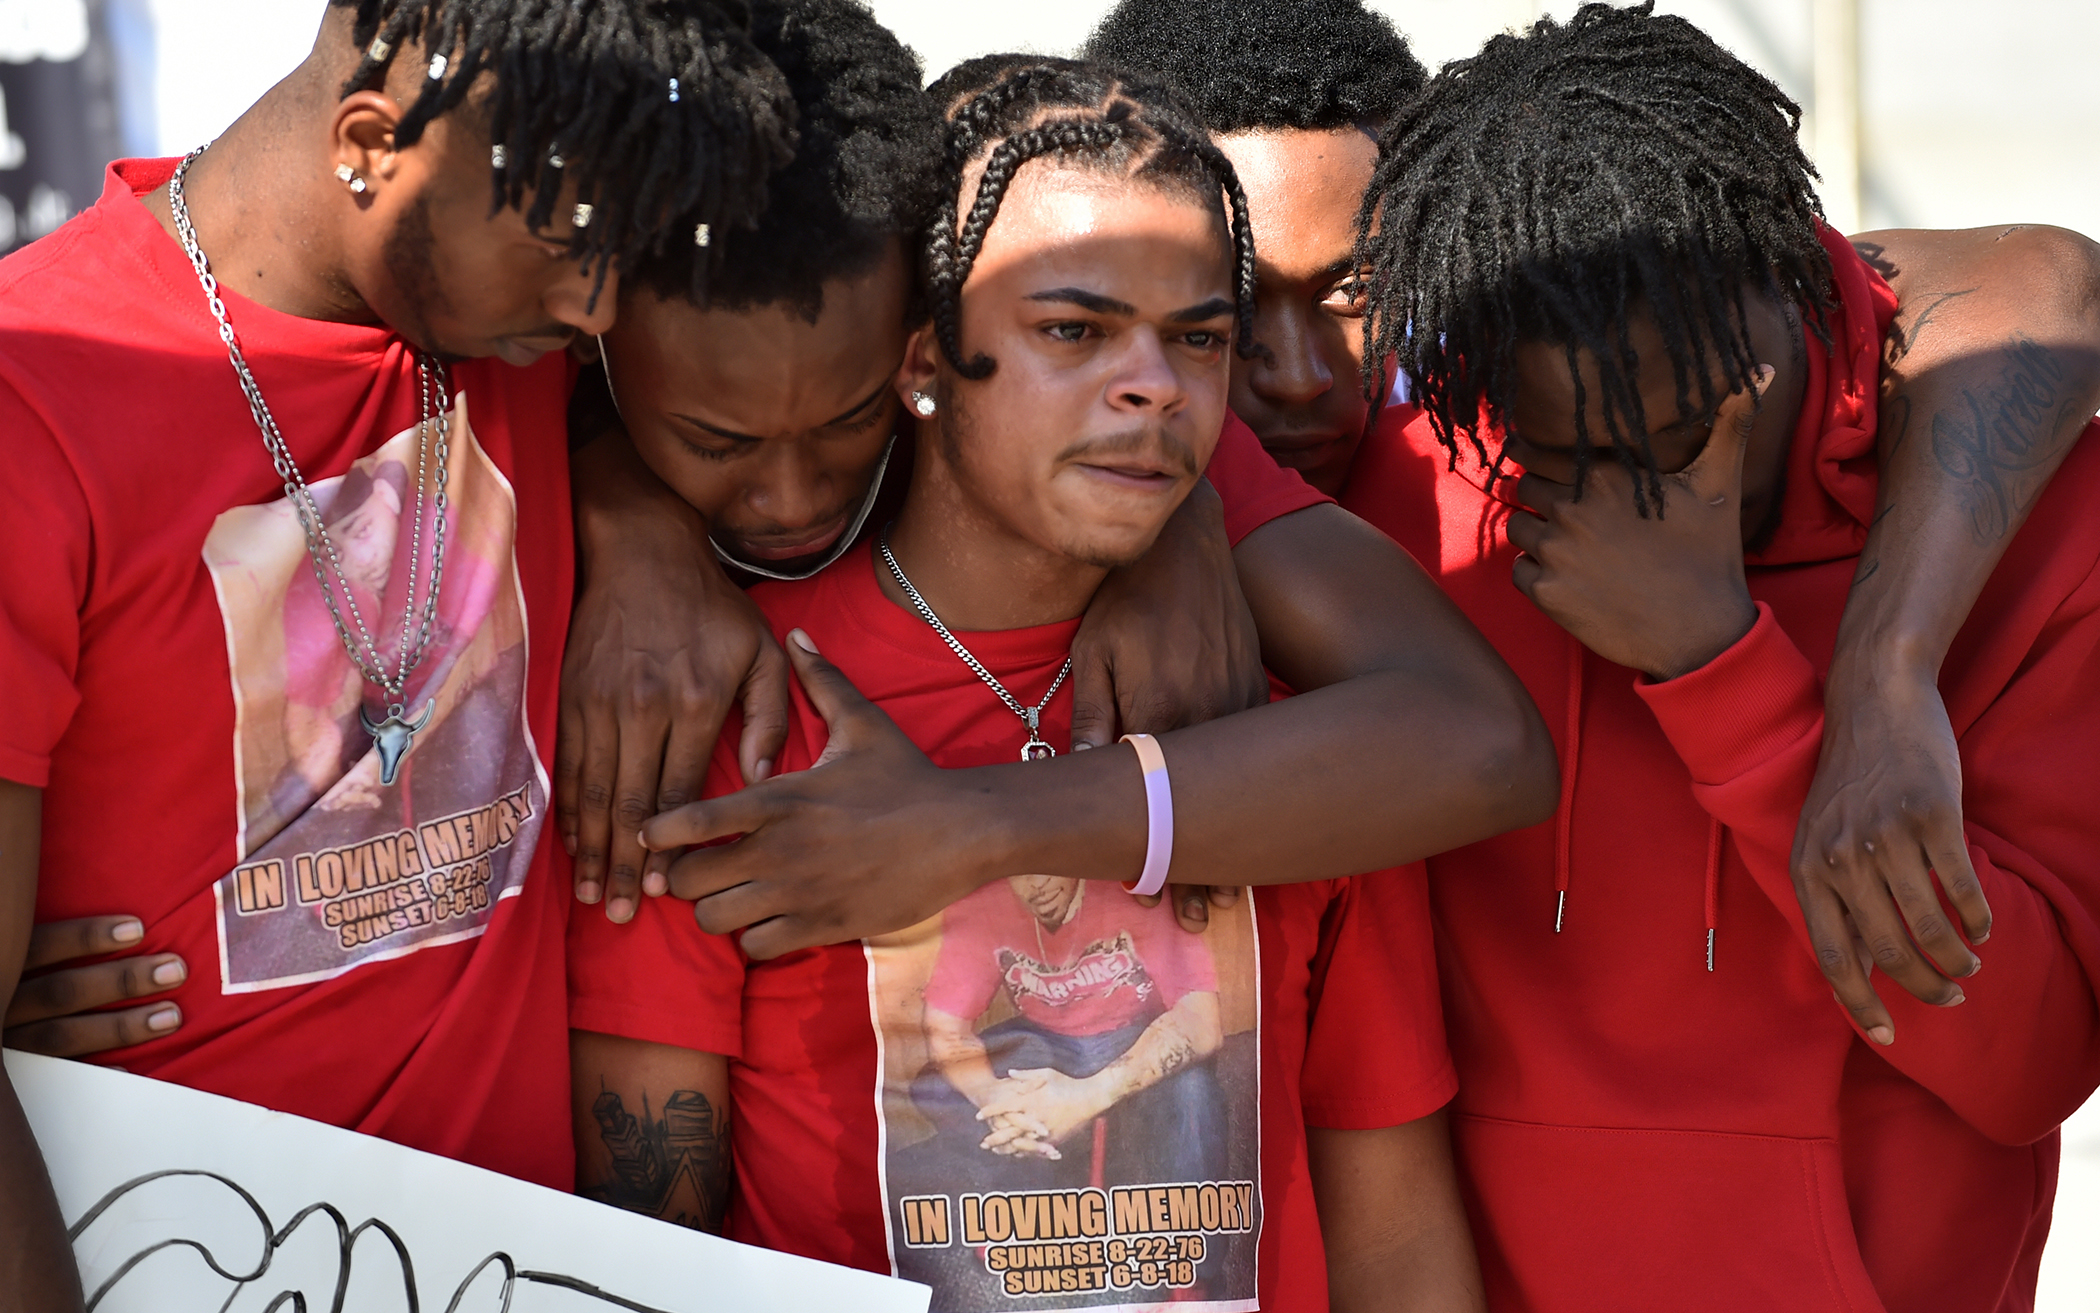 Five young men mourning and comforting each other at rally for the young man's father Shaheen Mackey who died after being detained by correction officers.